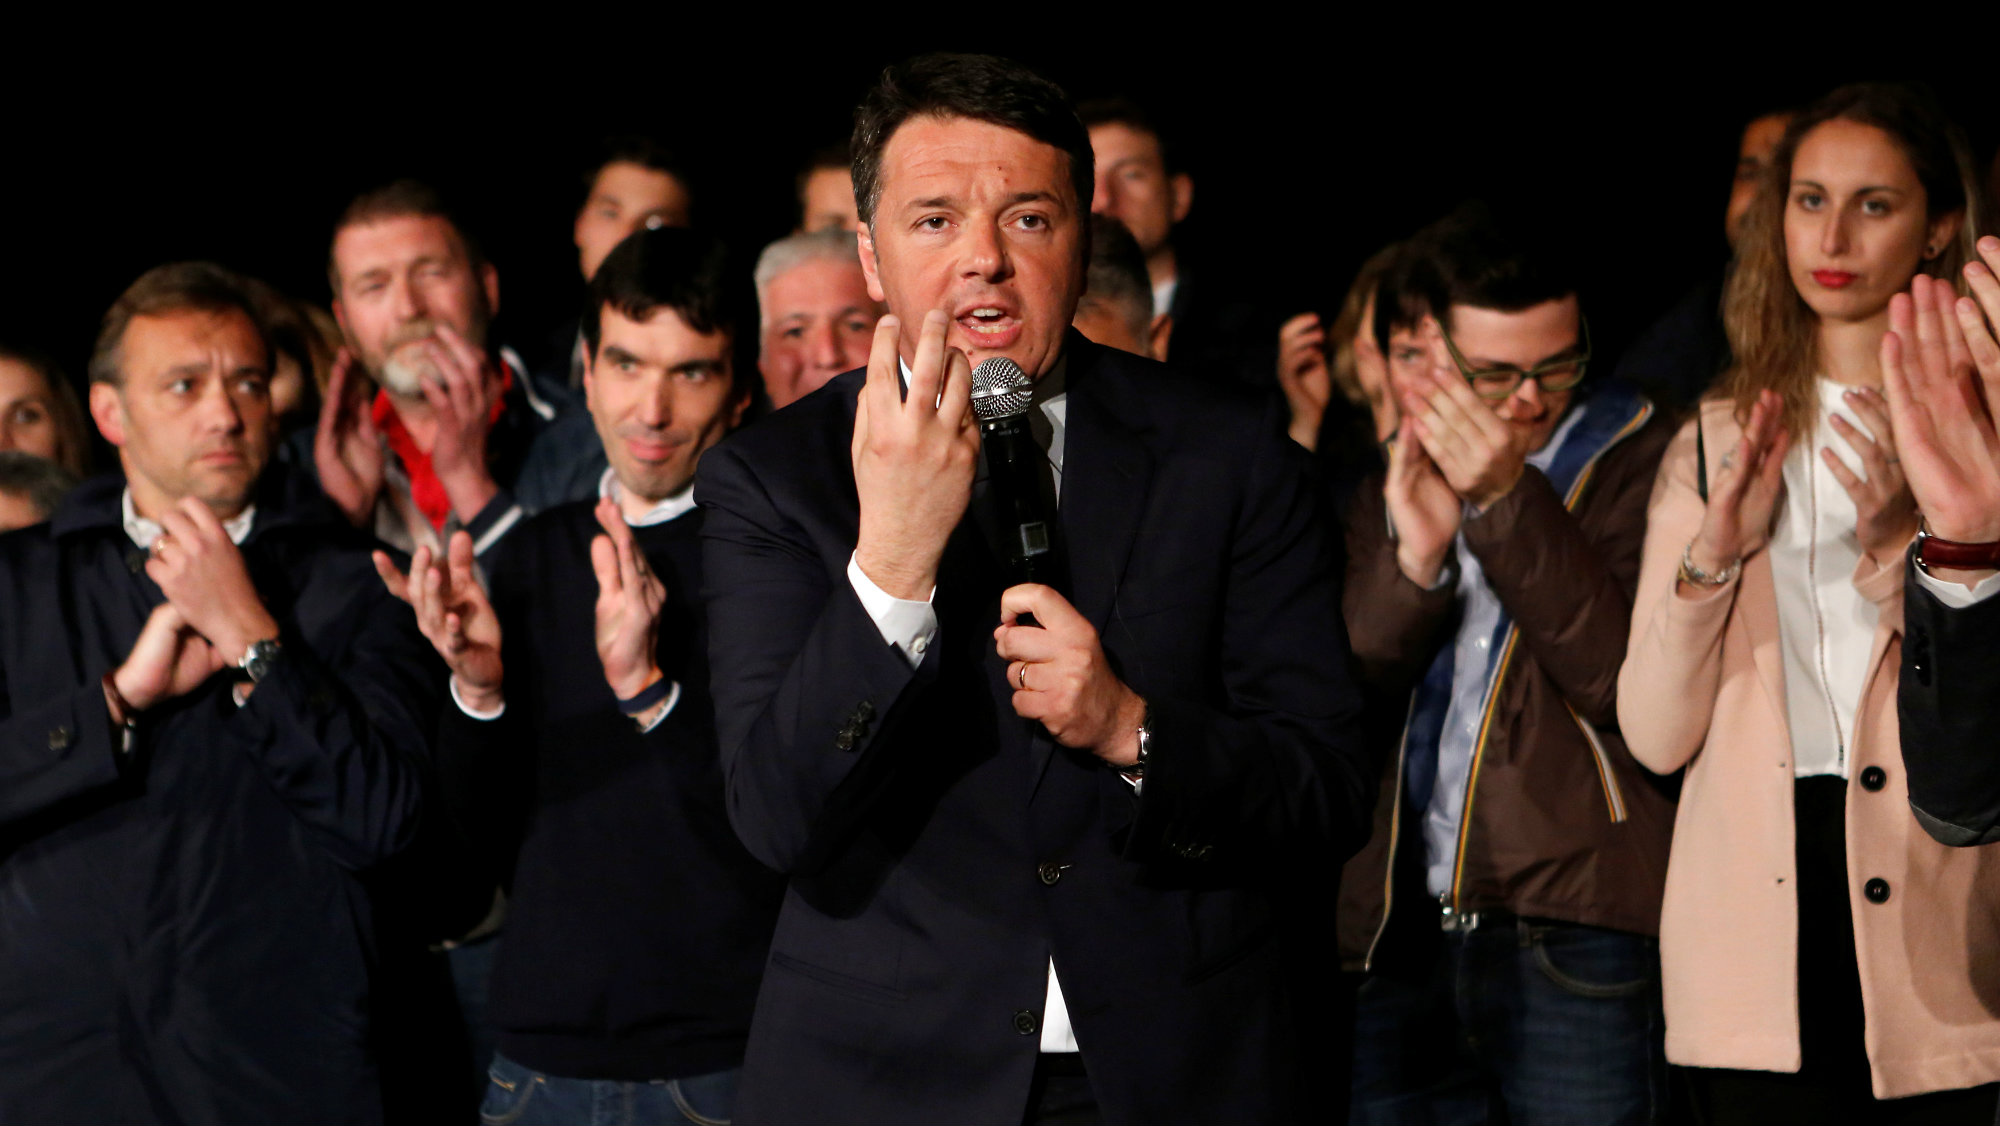 Italy's former Prime Minister Matteo Renzi speaks to a crowd